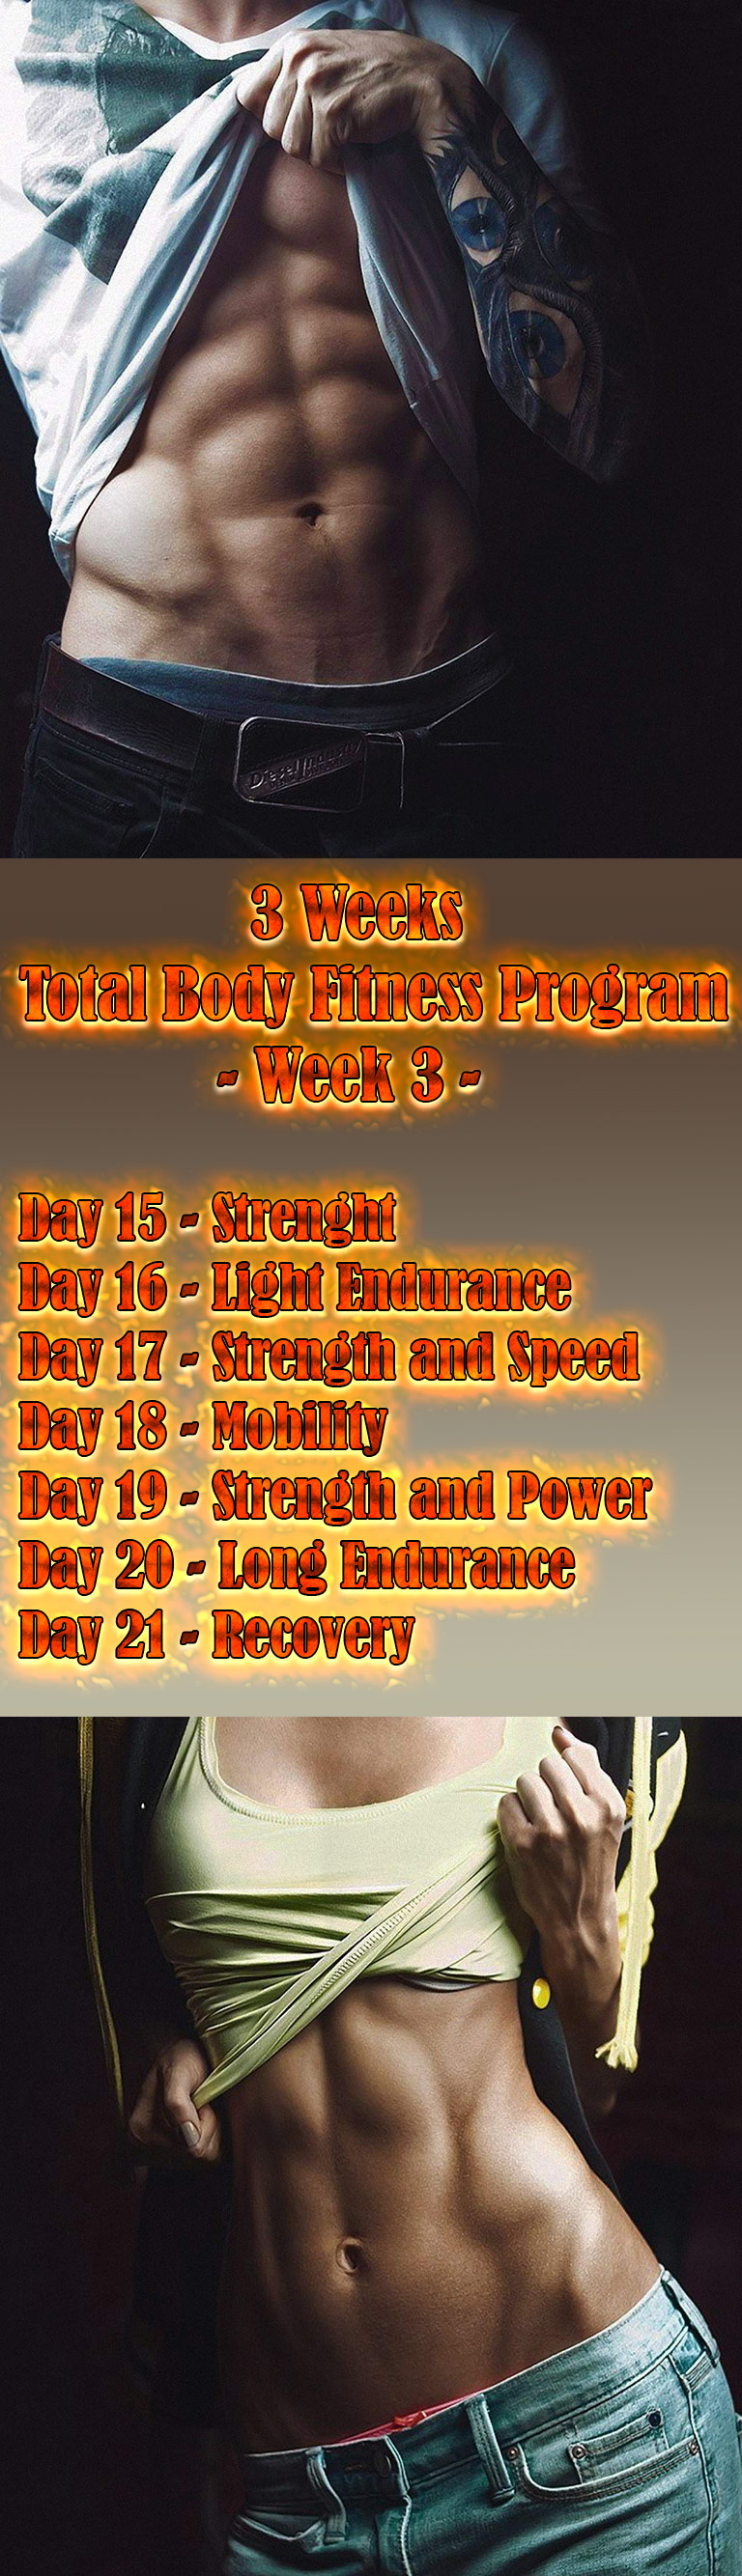 3 Weeks Total Body Fitness Program- Week 3